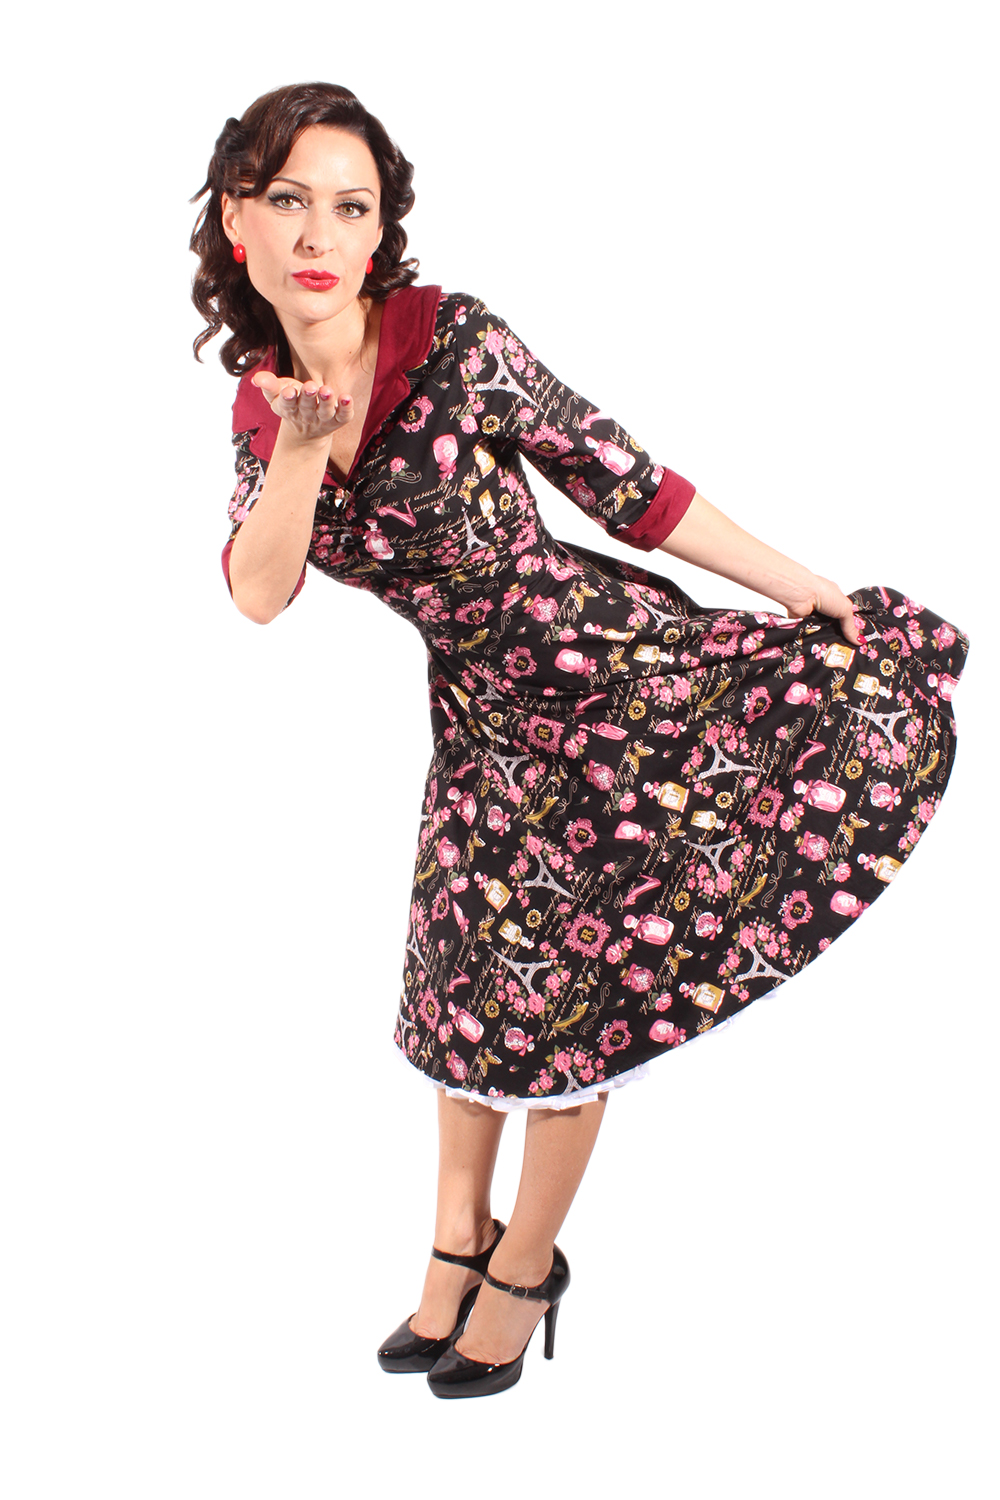 Souvenir Pin Up Rockabilly 3/4arm Swing French Paris Tellerrock Kleid